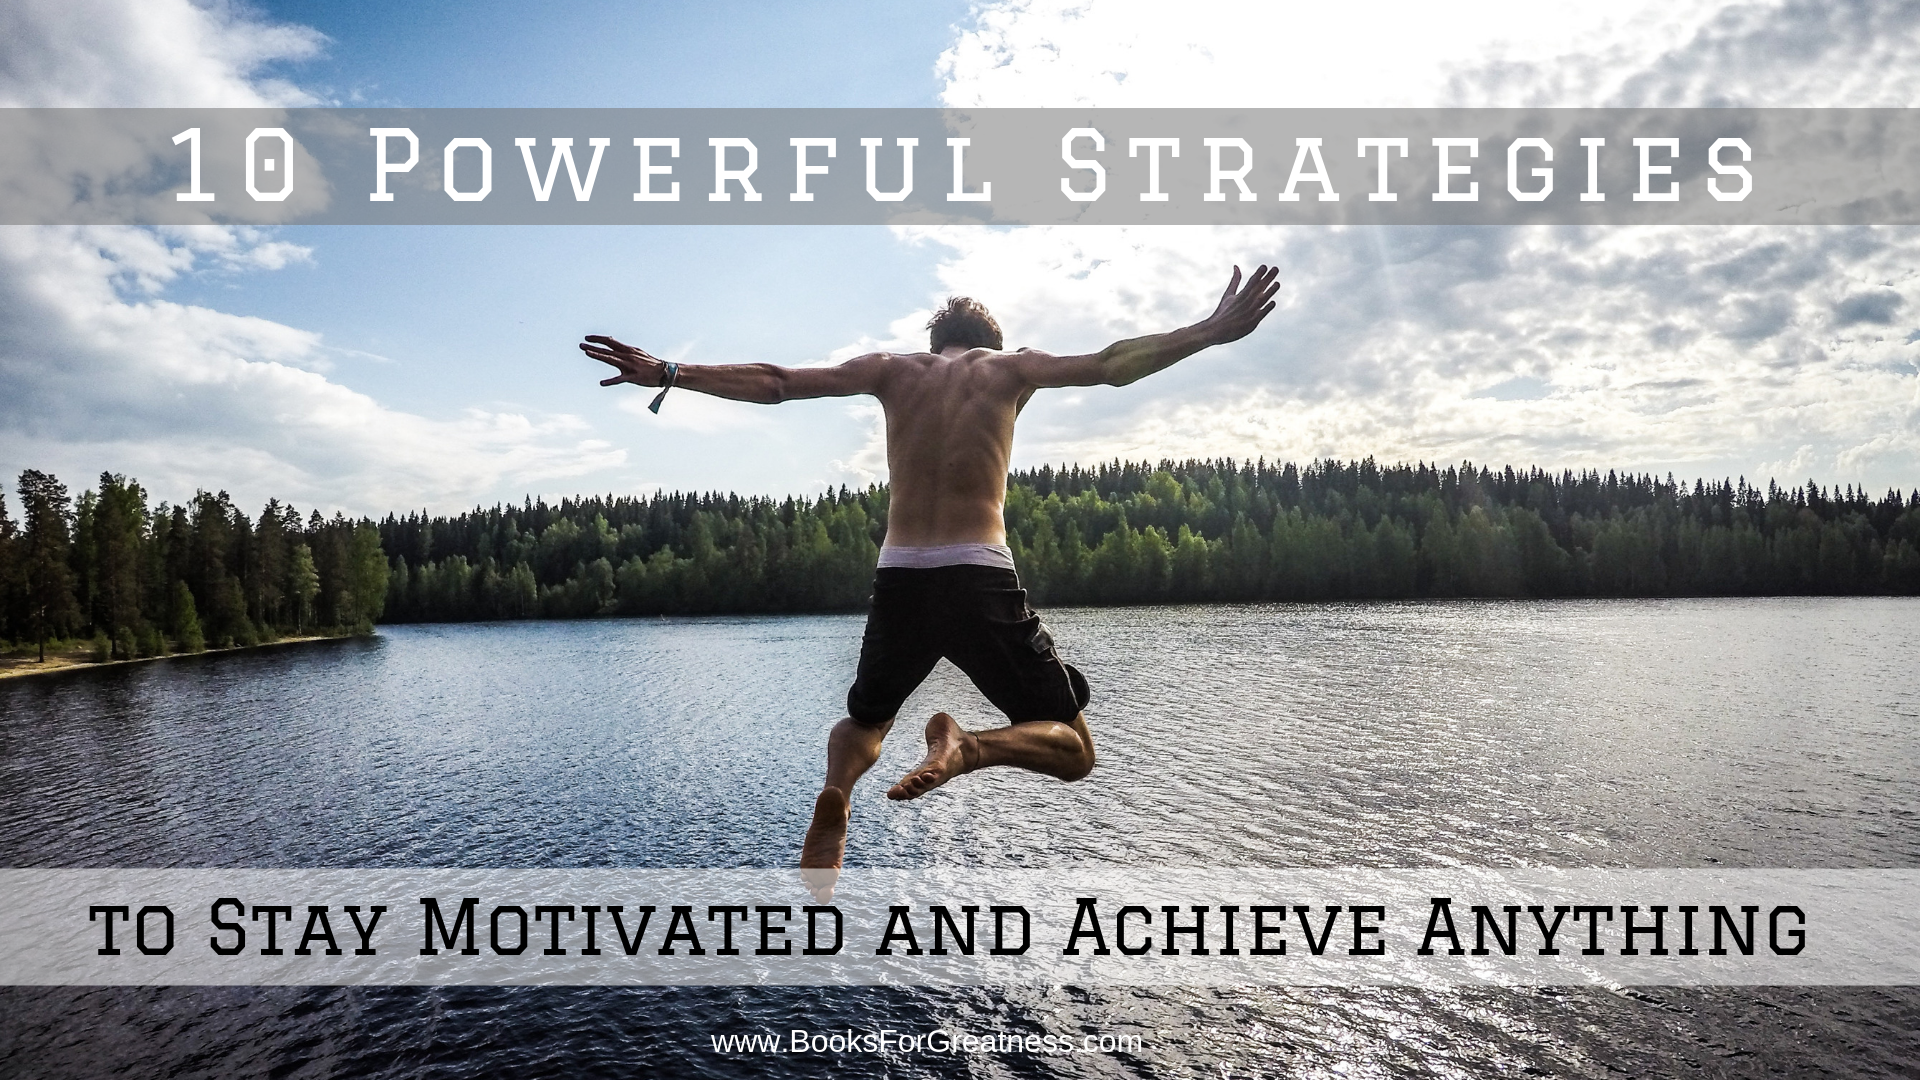 How to effectively stay motivated?